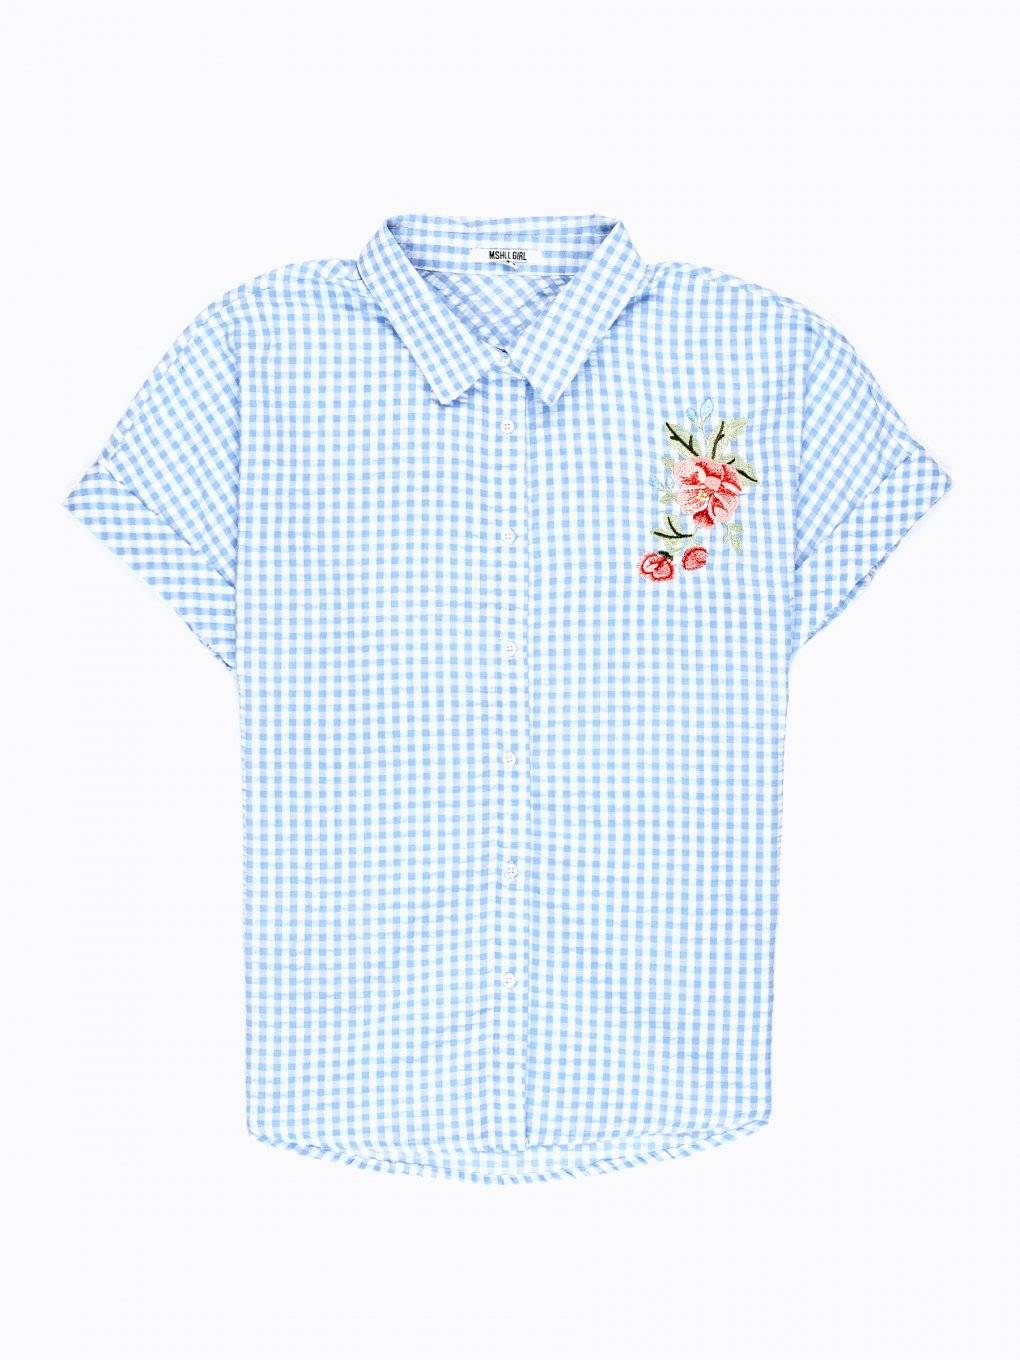 GINGHAM SHIRT WITH EMBROIDERY